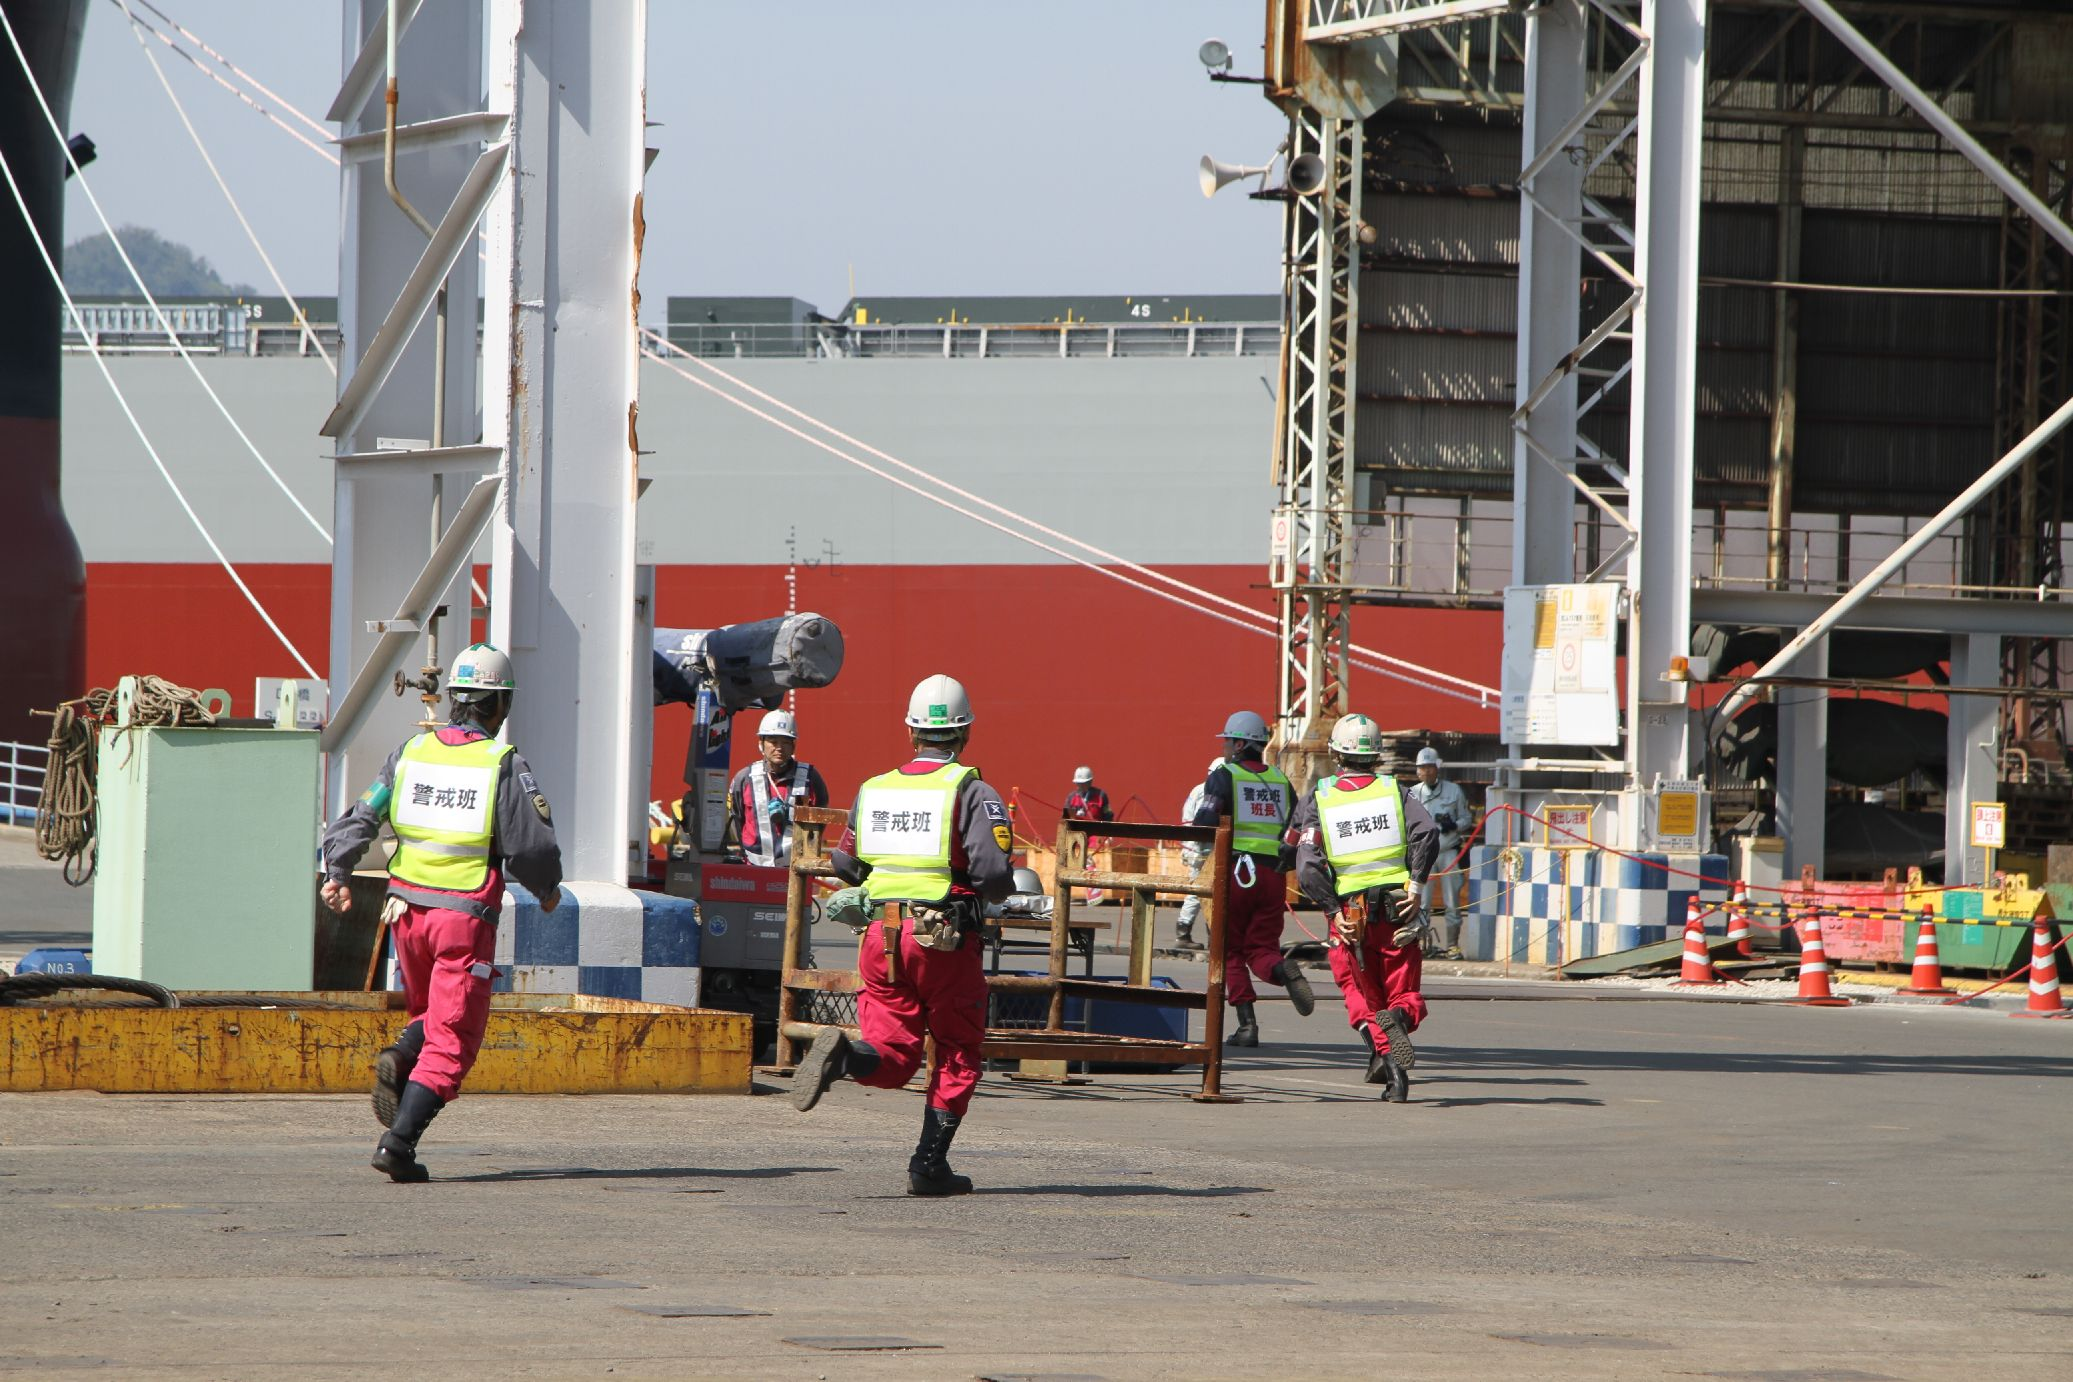 TSUNEISHI SHIPBUILDING held comprehensive disaster drill with the cooperation of Fukuyama Nishi Fire Department